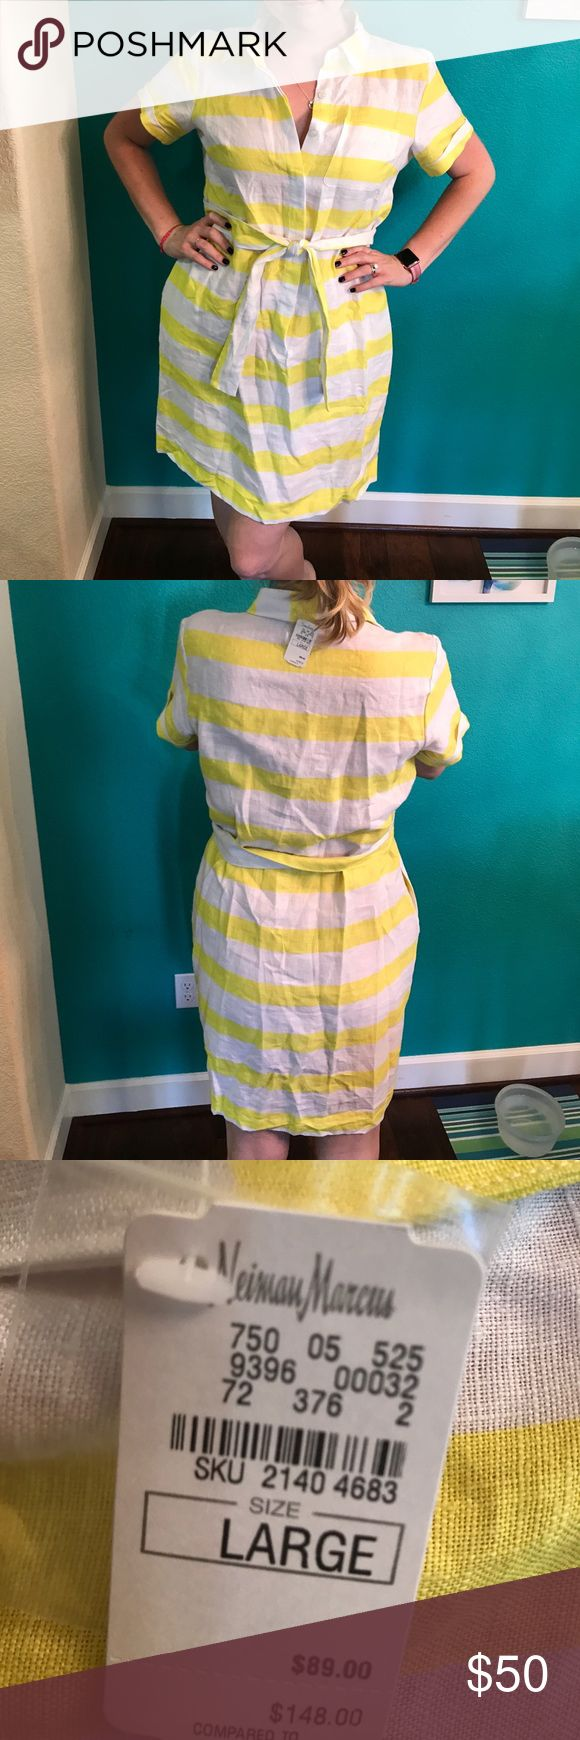 NWT Neiman Marcus 100% Linen Shirt Dress. Size L Super cute dress with belted closure and button down style! And it has POCKETS!!! Neiman Marcus Dresses